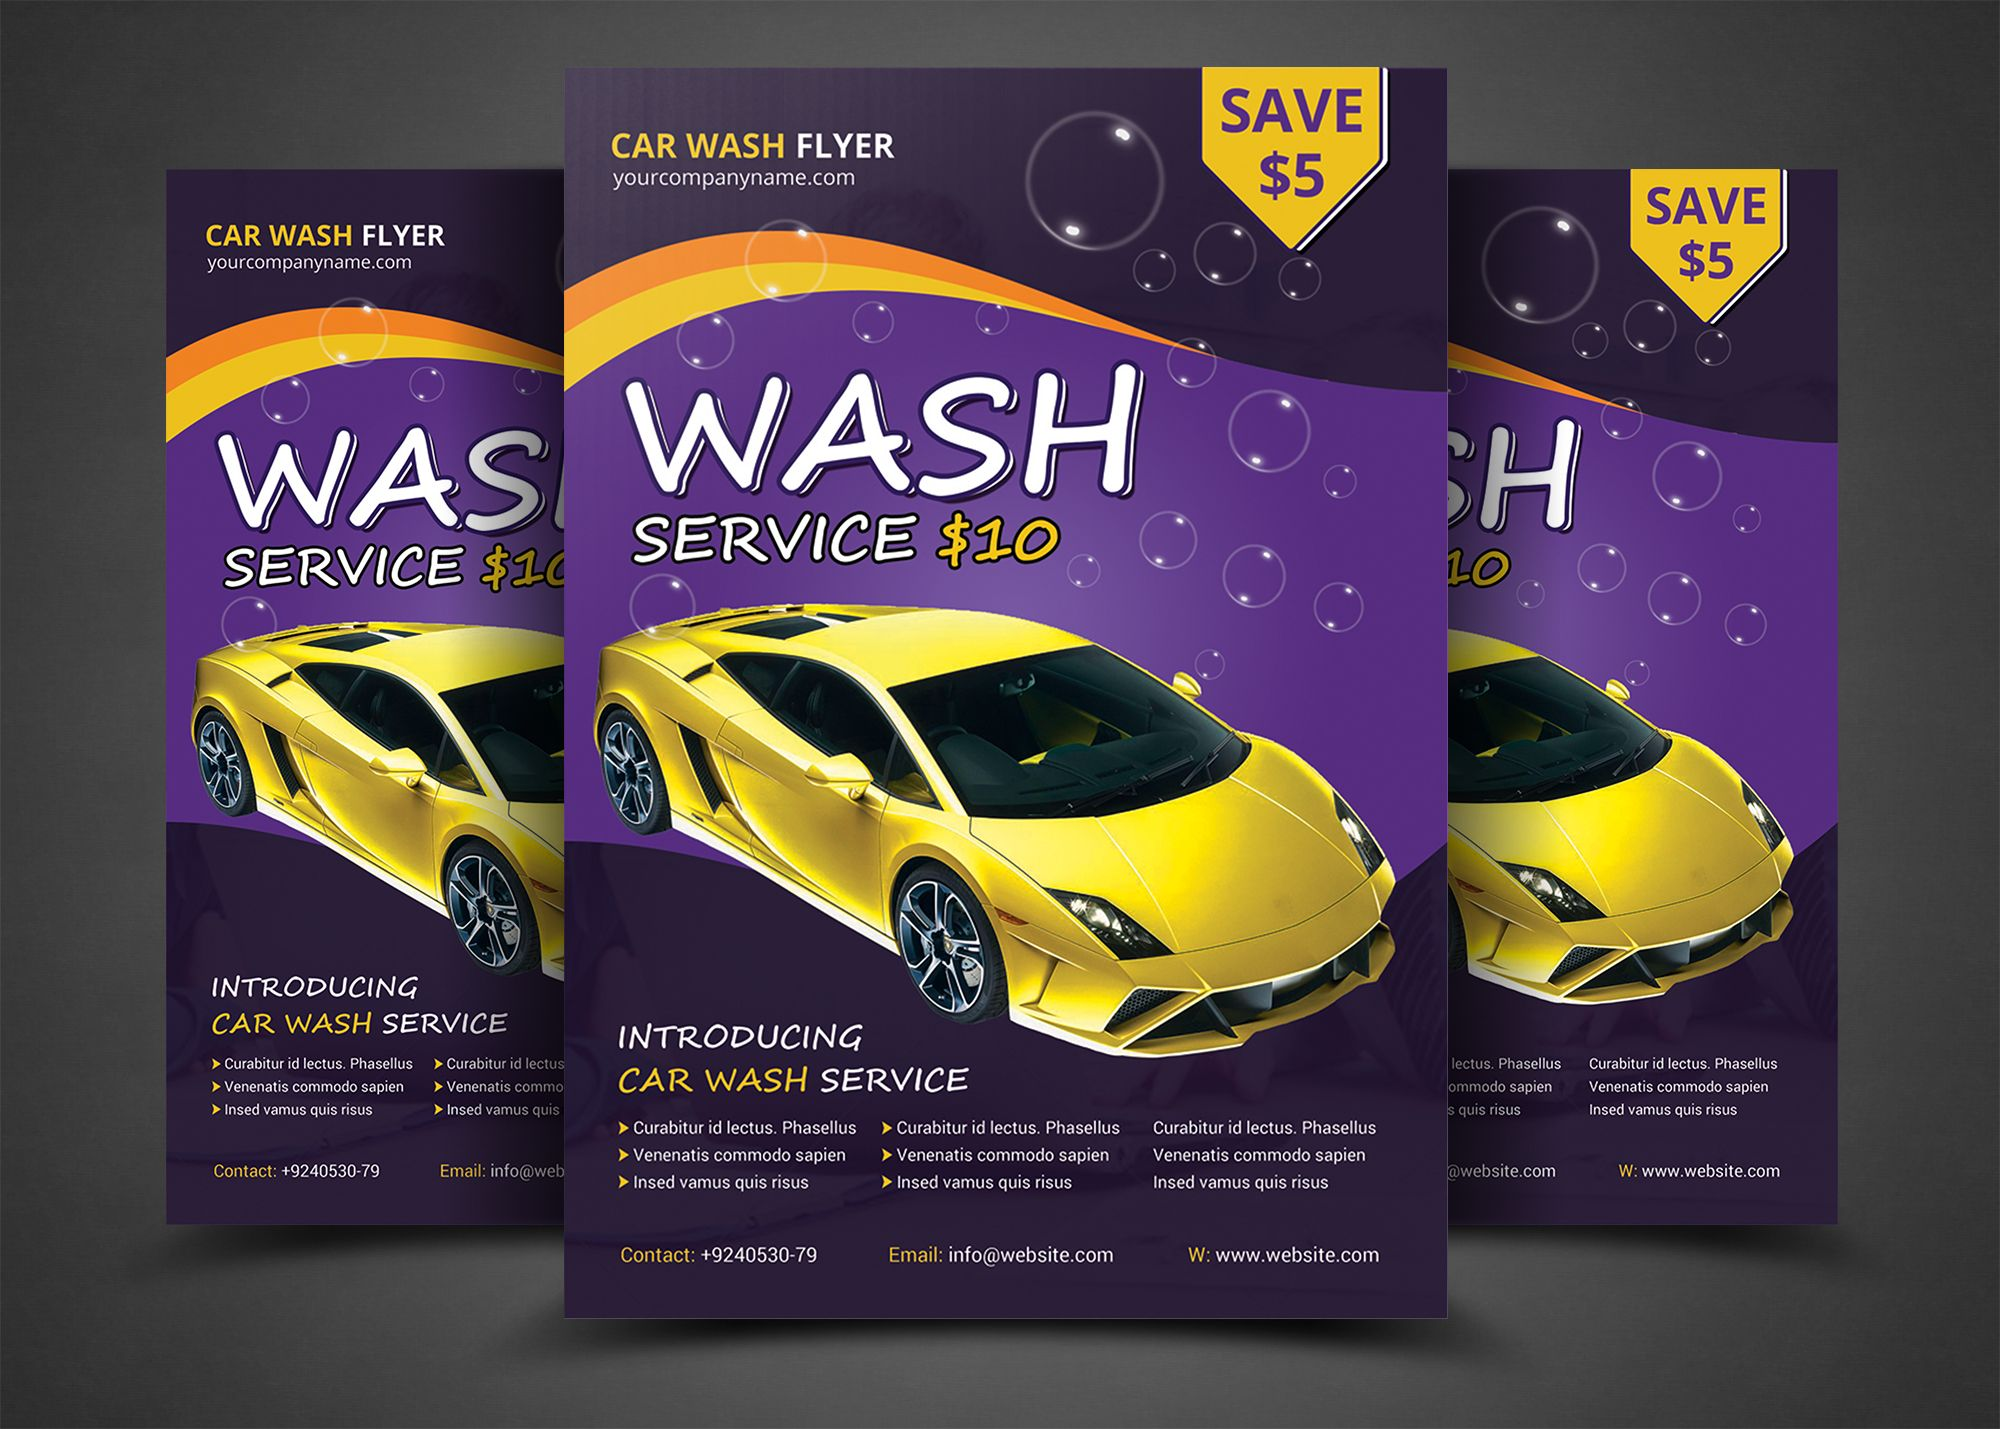 Car Wash Flyer Templates By Afzaalgraphics On Creativemarket Gg